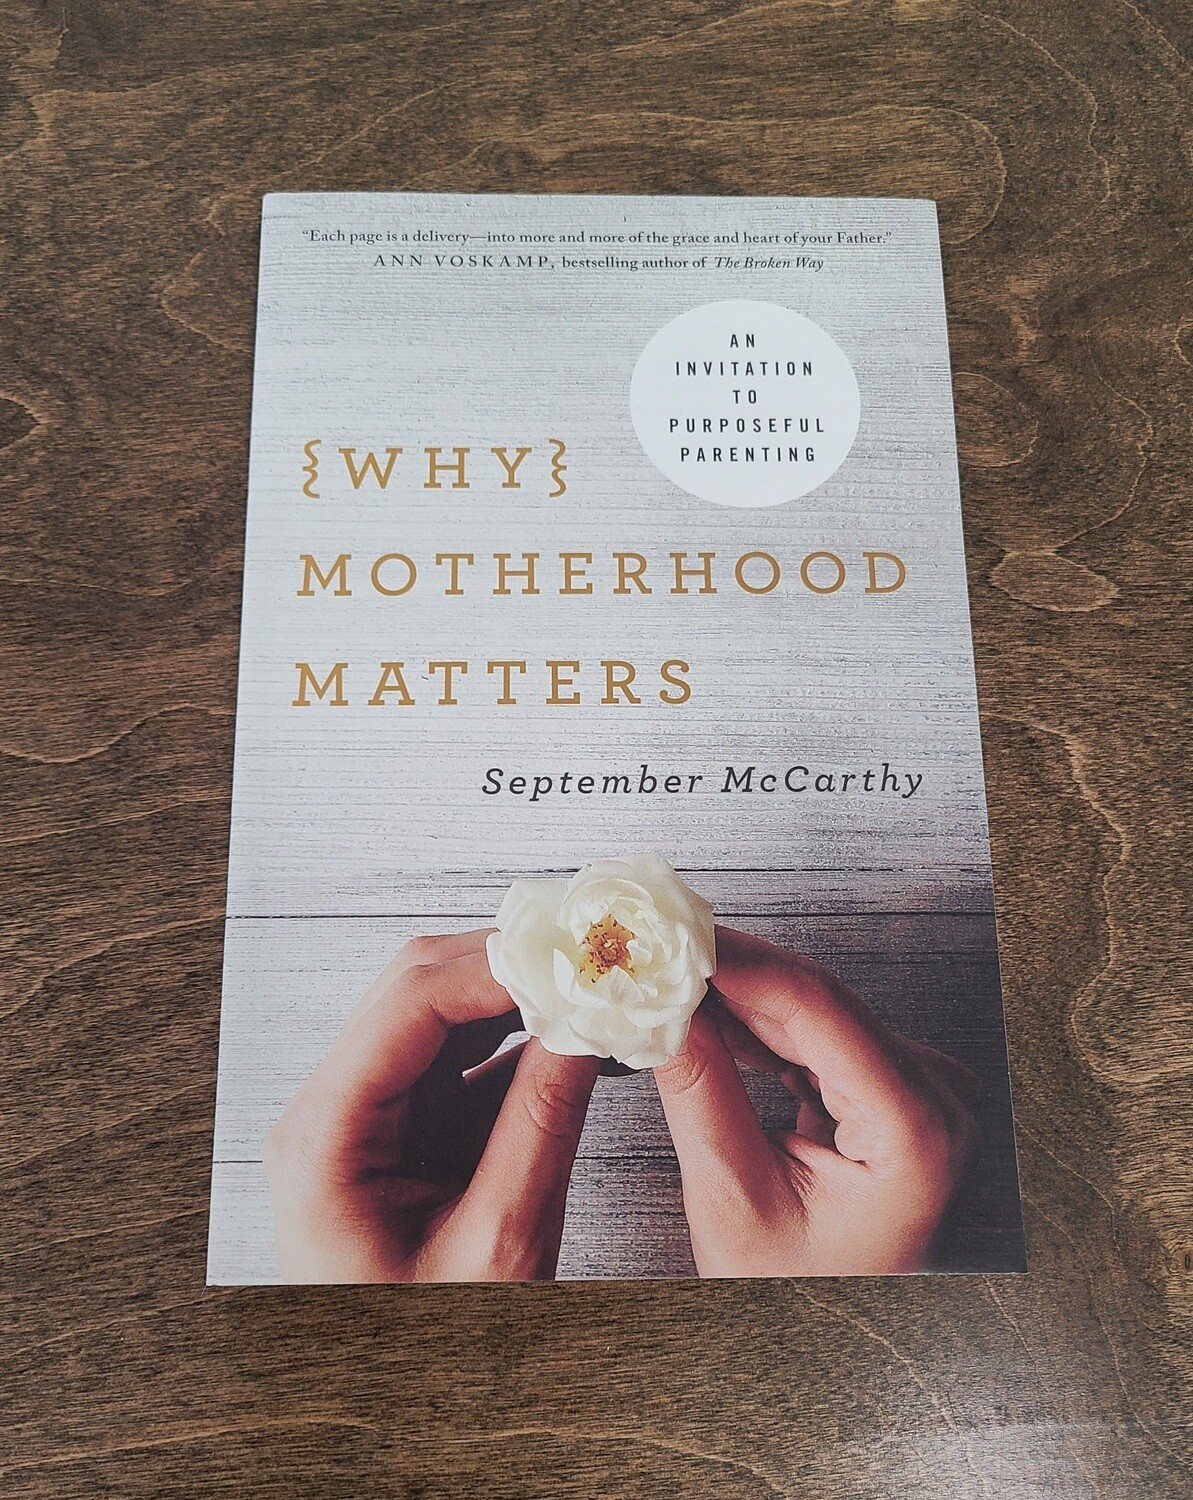 (Why) Motherhood Matters by September McCarthy